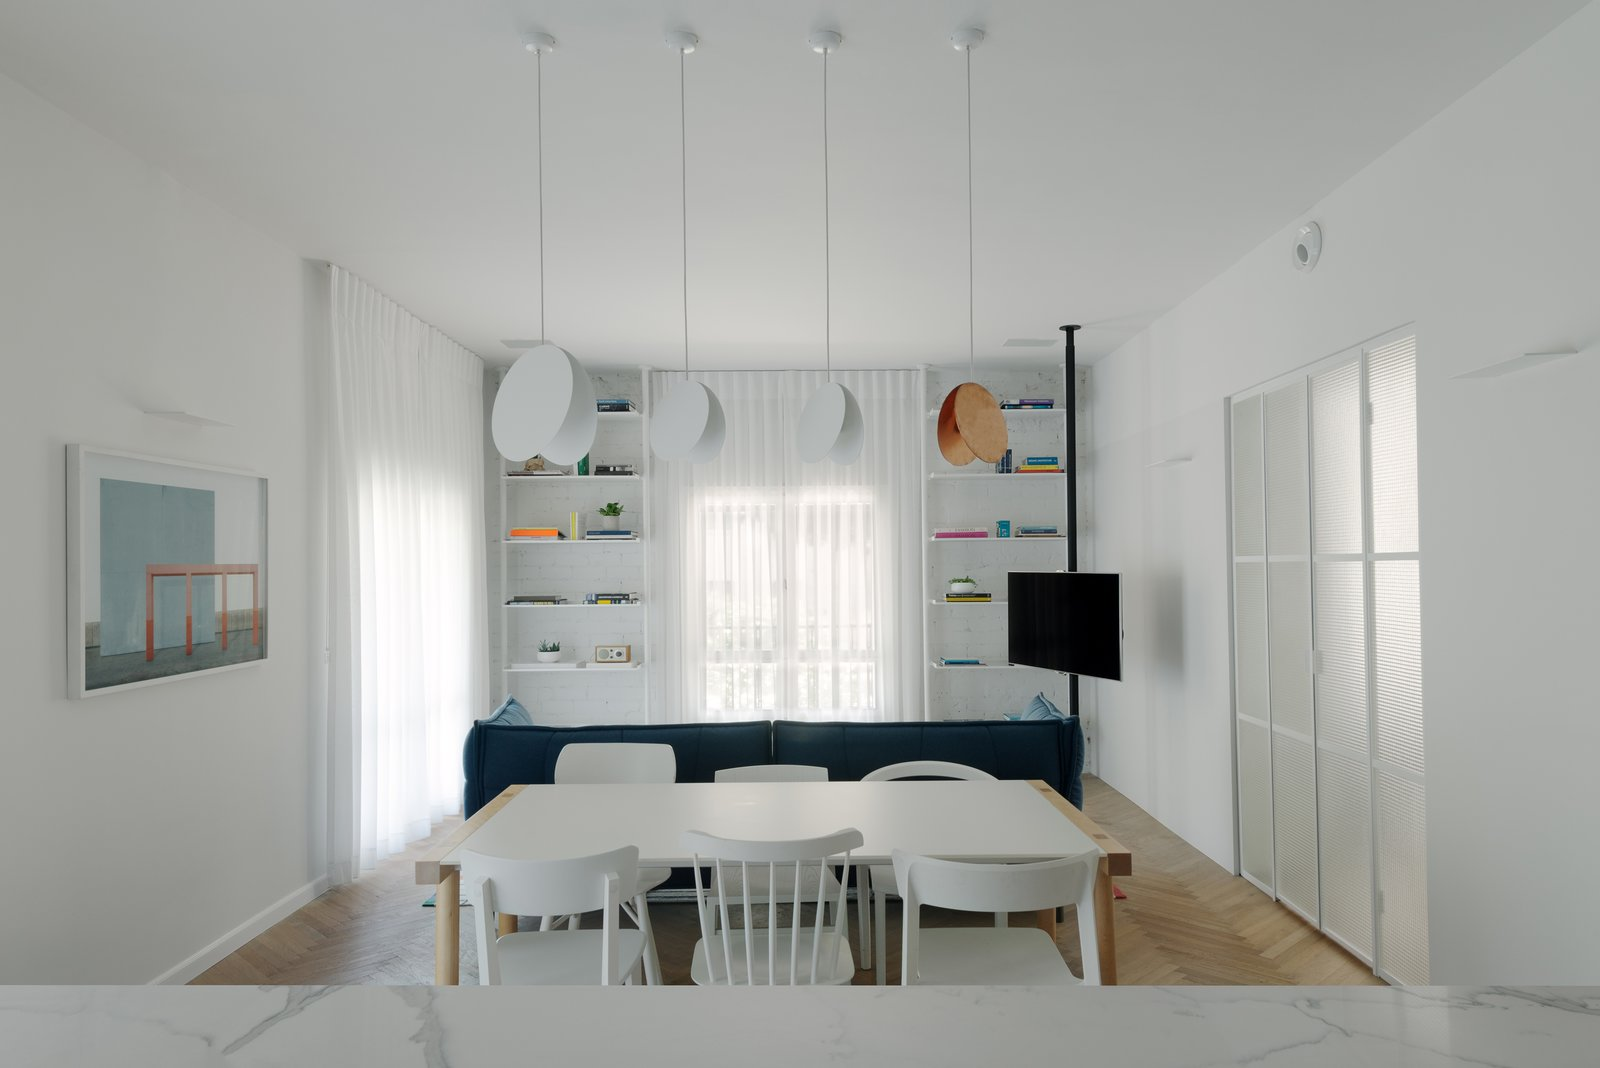 Dining Room, Storage, Table, Chair, Ceiling Lighting, Wall Lighting, Pendant Lighting, and Medium Hardwood Floor living room  Colorfull in the white city by Lital Ophir I Interior Design